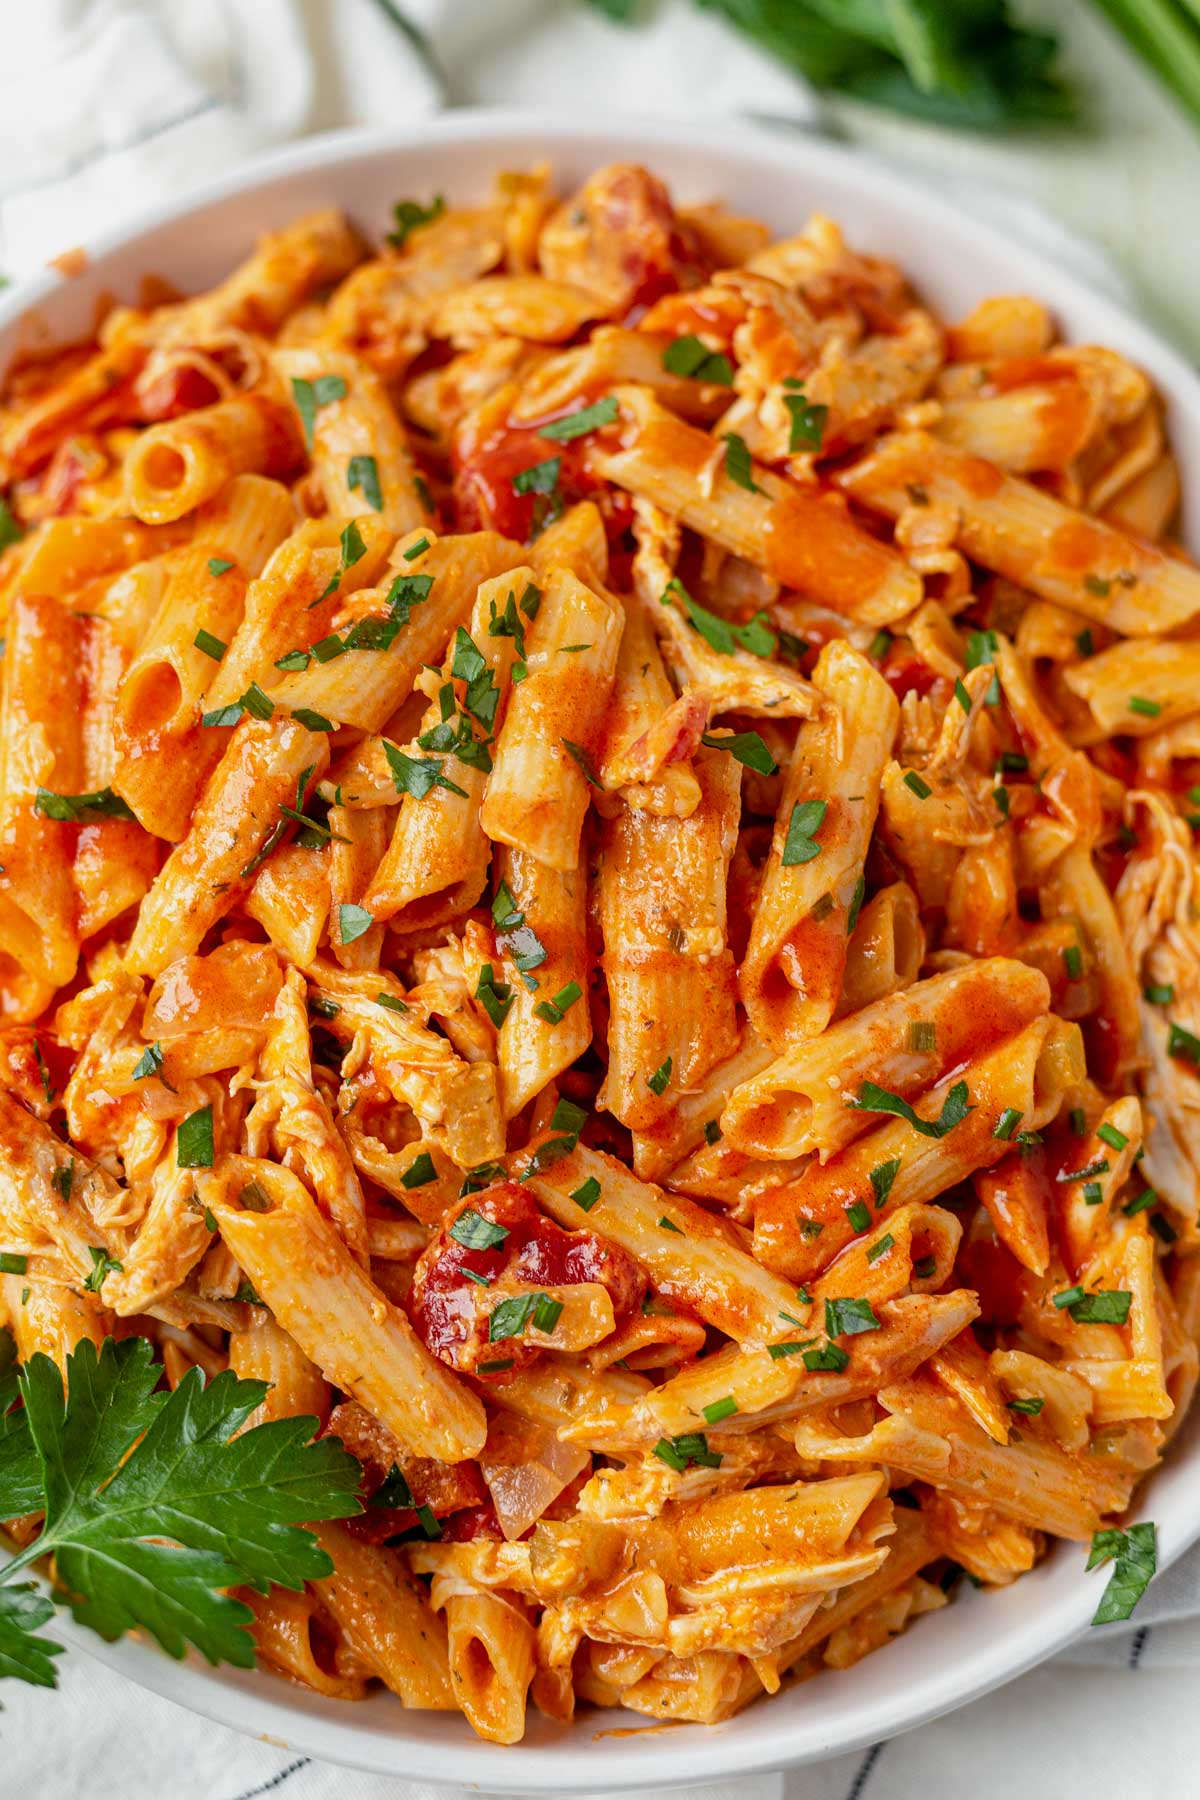 buffalo chicken pasta in a white bowl topped with hot sauce and fresh herbs